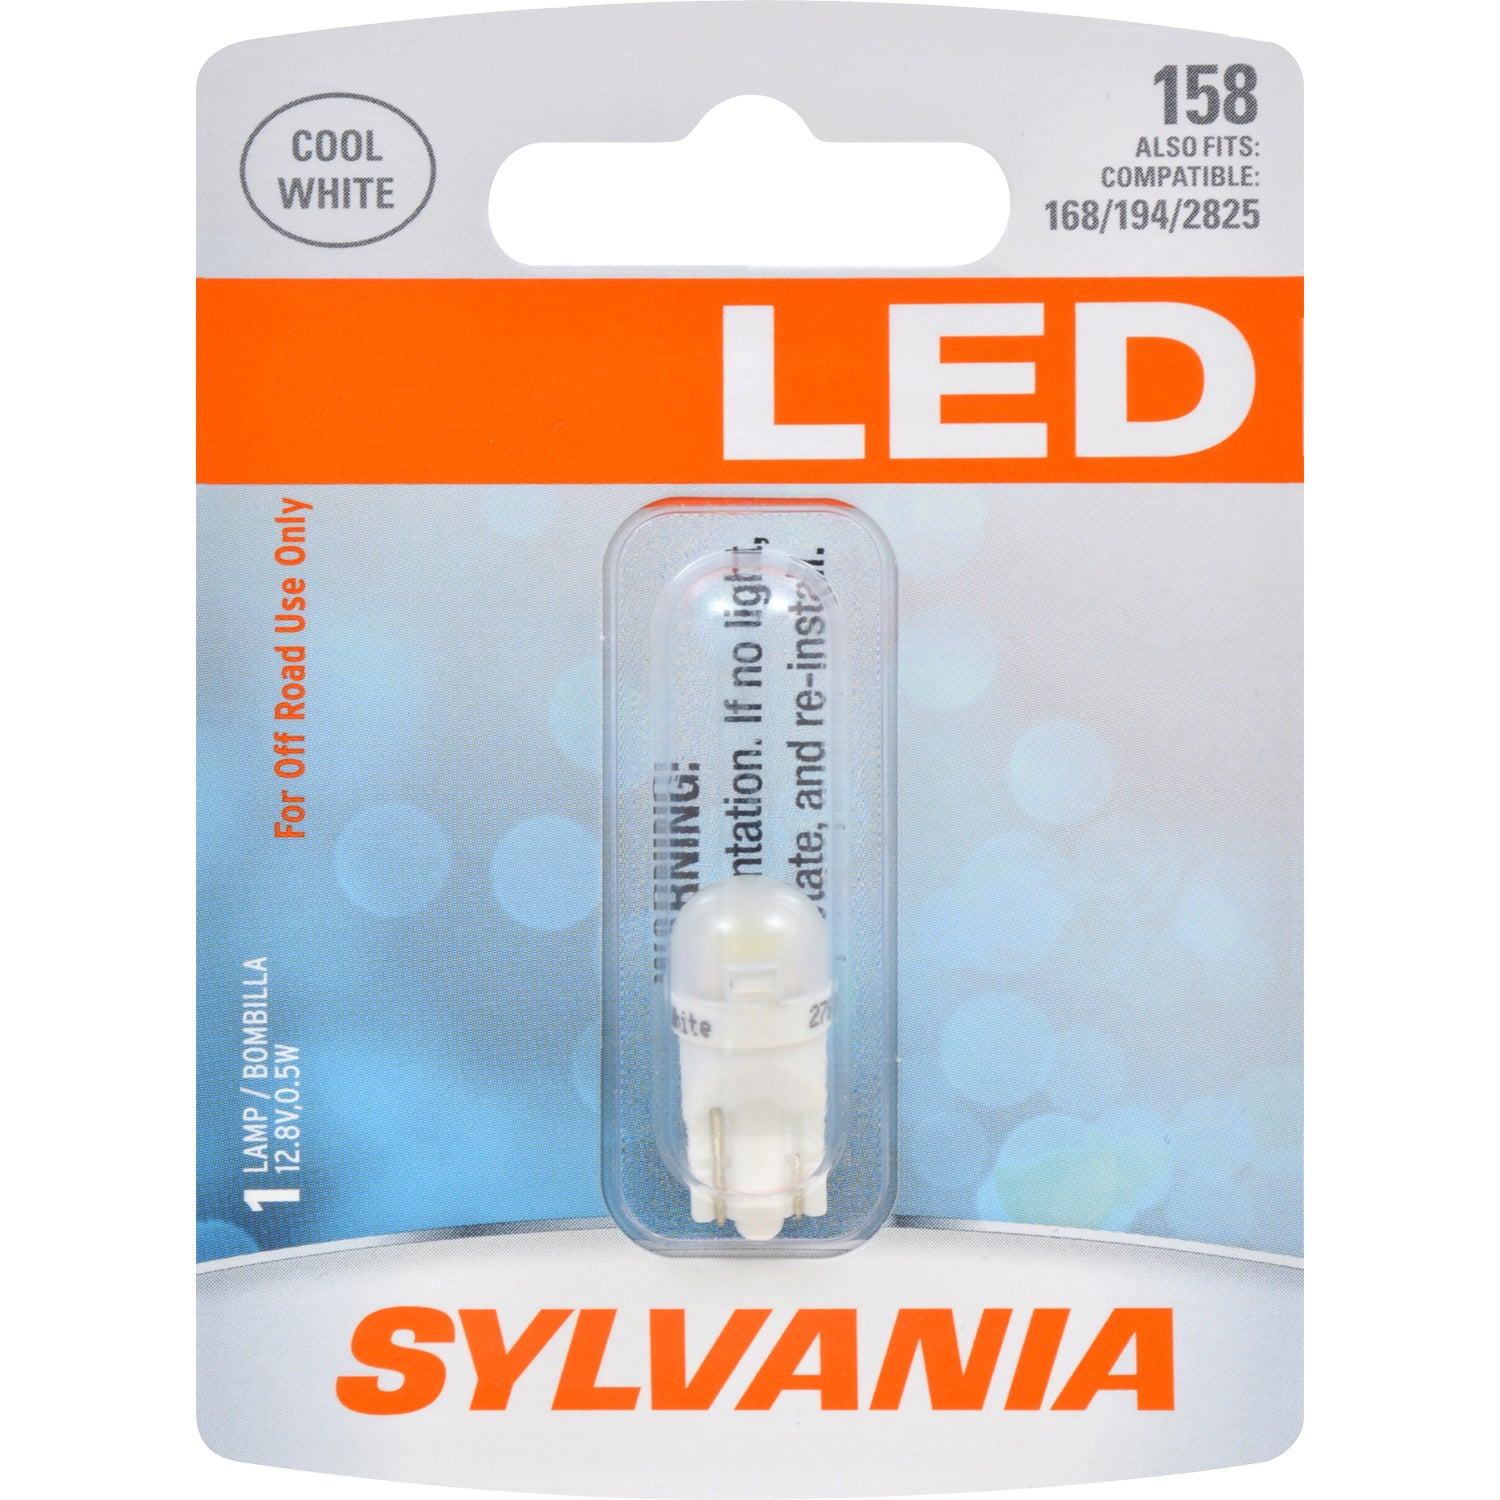 SYLVANIA LED 158 W5W Cool White Automotive Bulb - also fits 168, 194, 2825